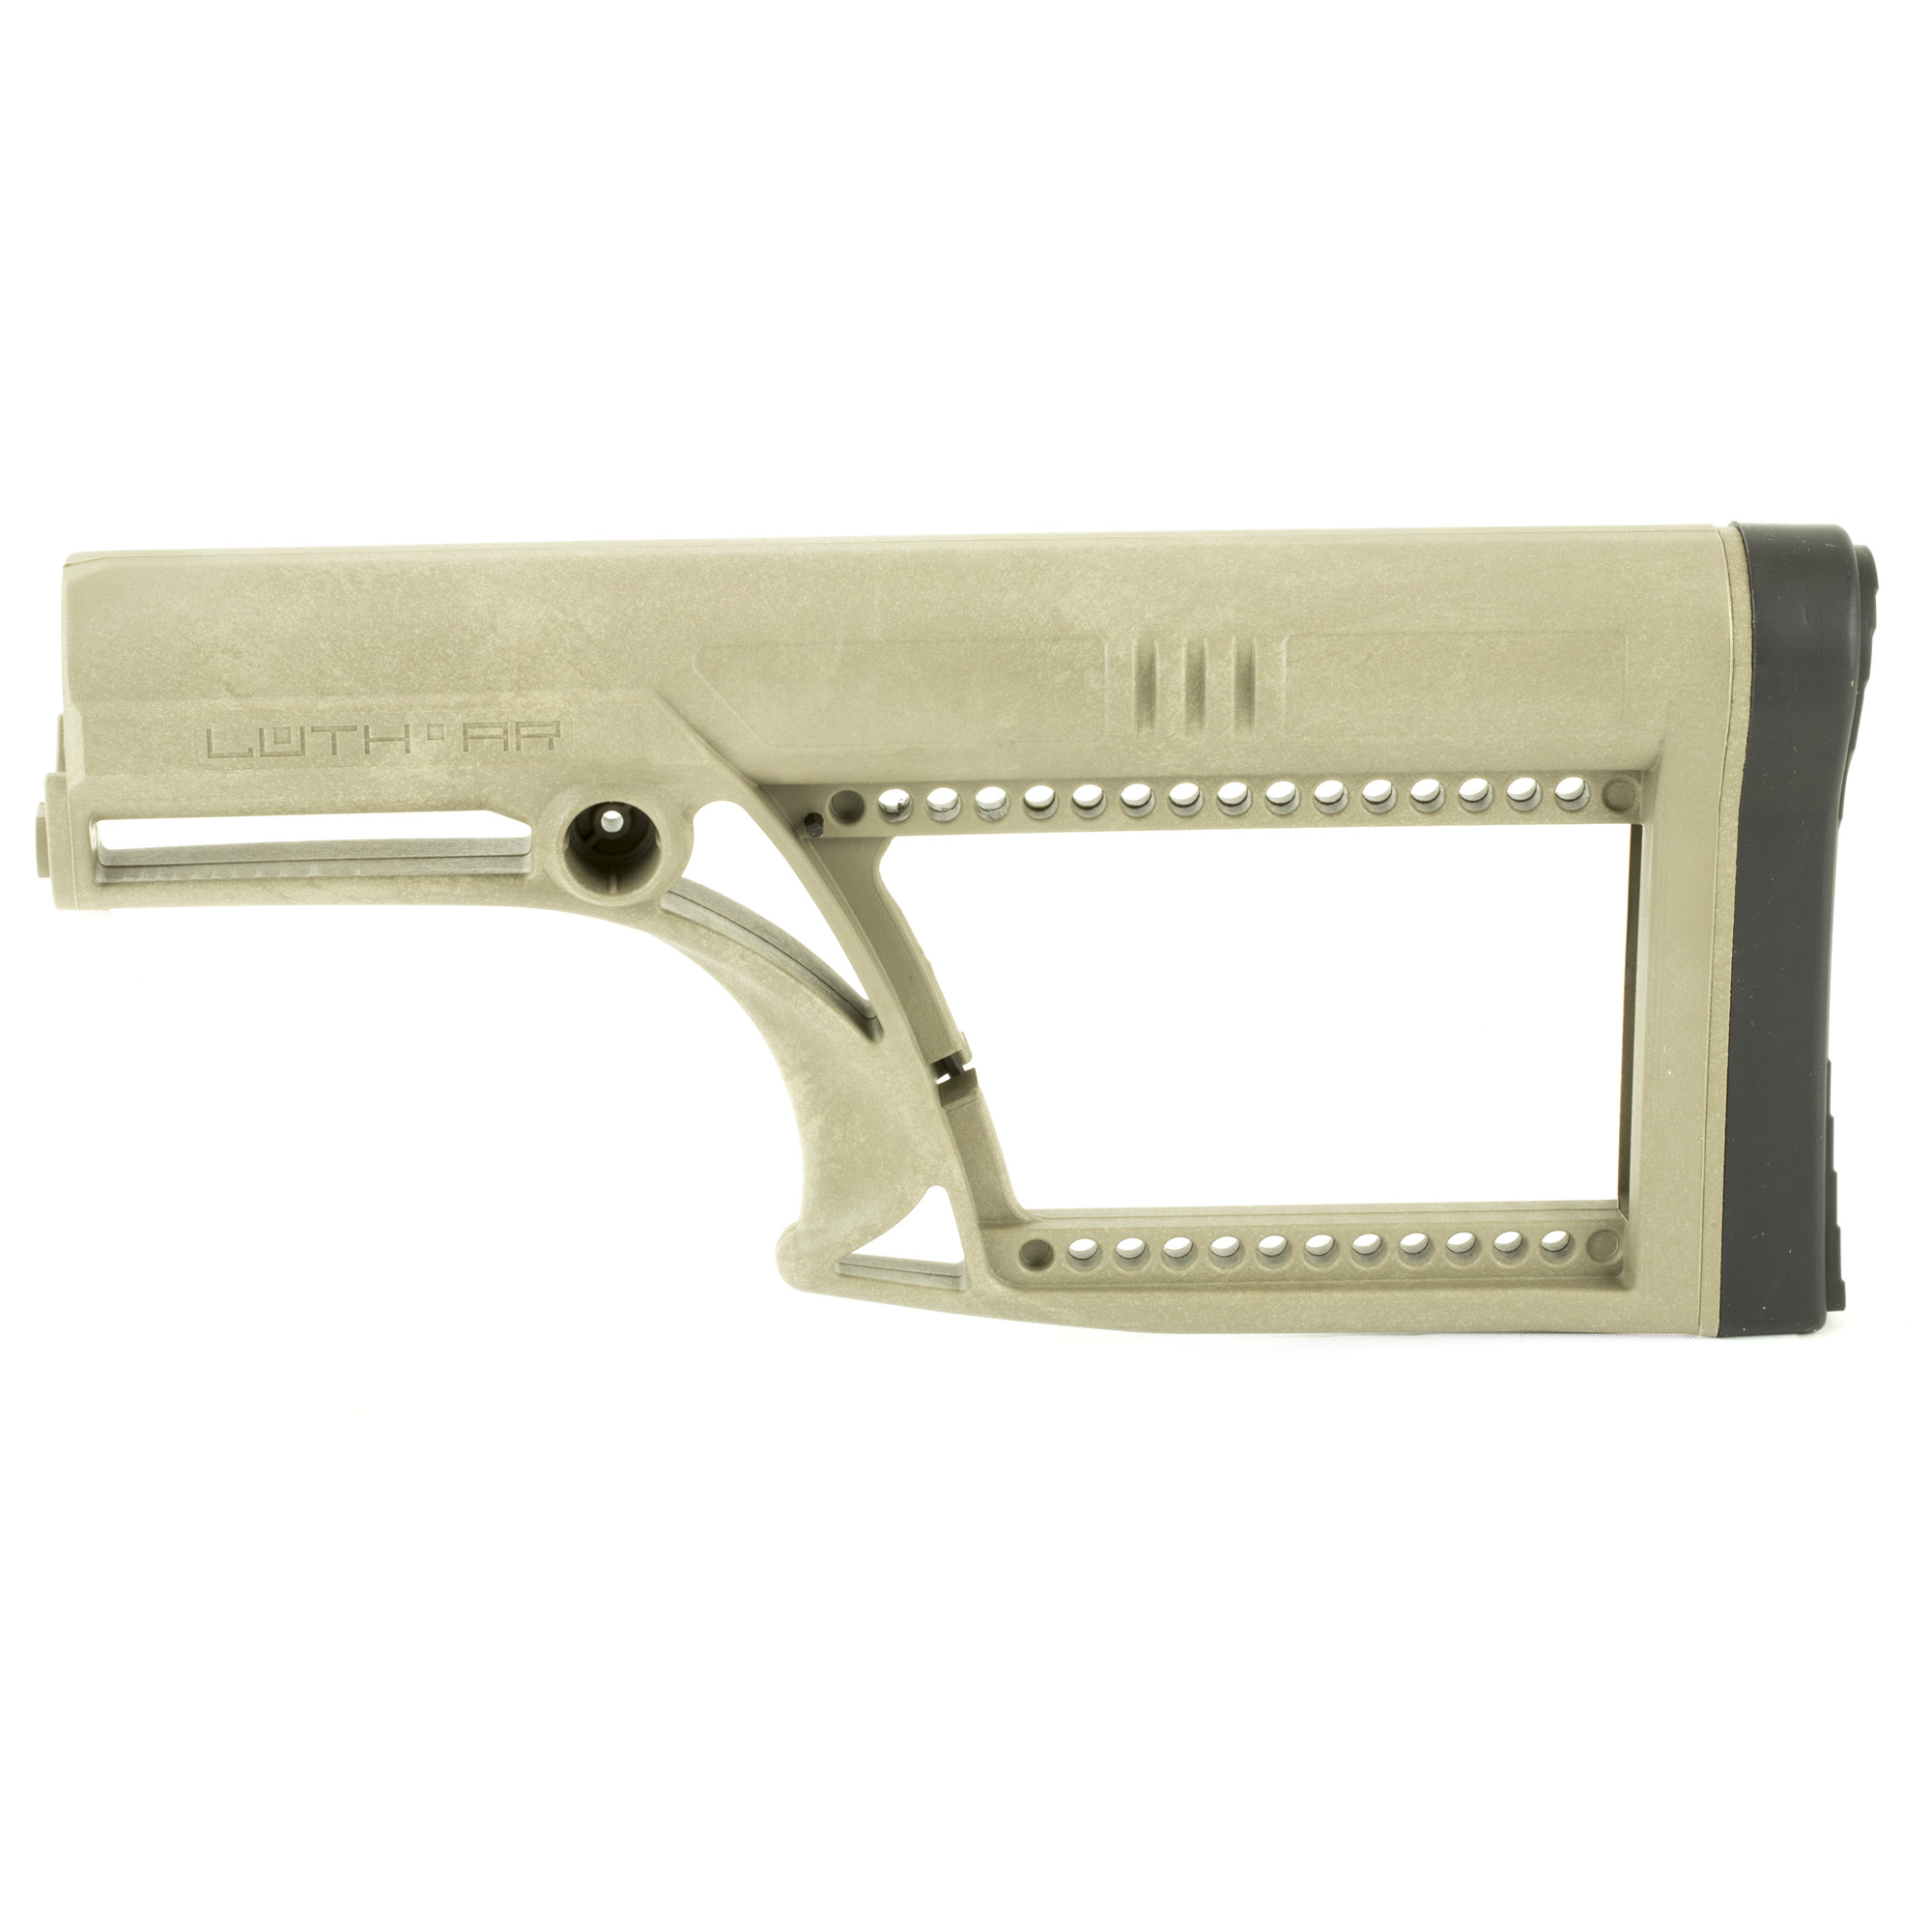 "Luth-AR's MBA-2 Skullaton Fixed Rifle Stock is made to mount to an AR-15 & AR-10 rifle length A2 Round Standard Buffer Tube. It is constructed of super strong glass filled nylon and incorporates a castle nut and lock ring in the design. It fits all .223 and most .308 AR style rifles. It is ergonomic"" easy to replace and easy to install."